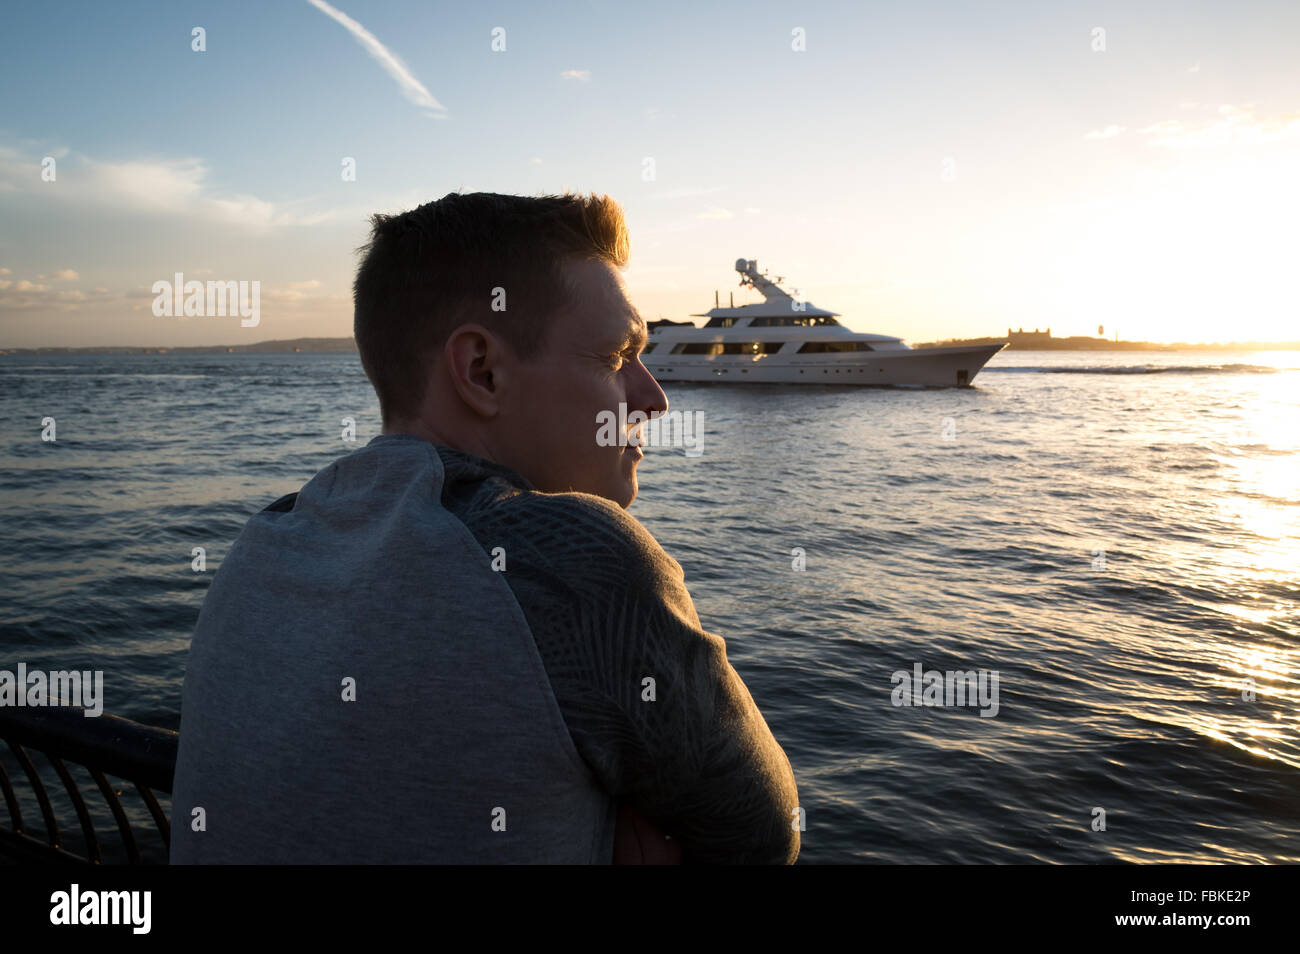 Adult man watching the sunset over a River as a private yacht sails past. - Stock Image